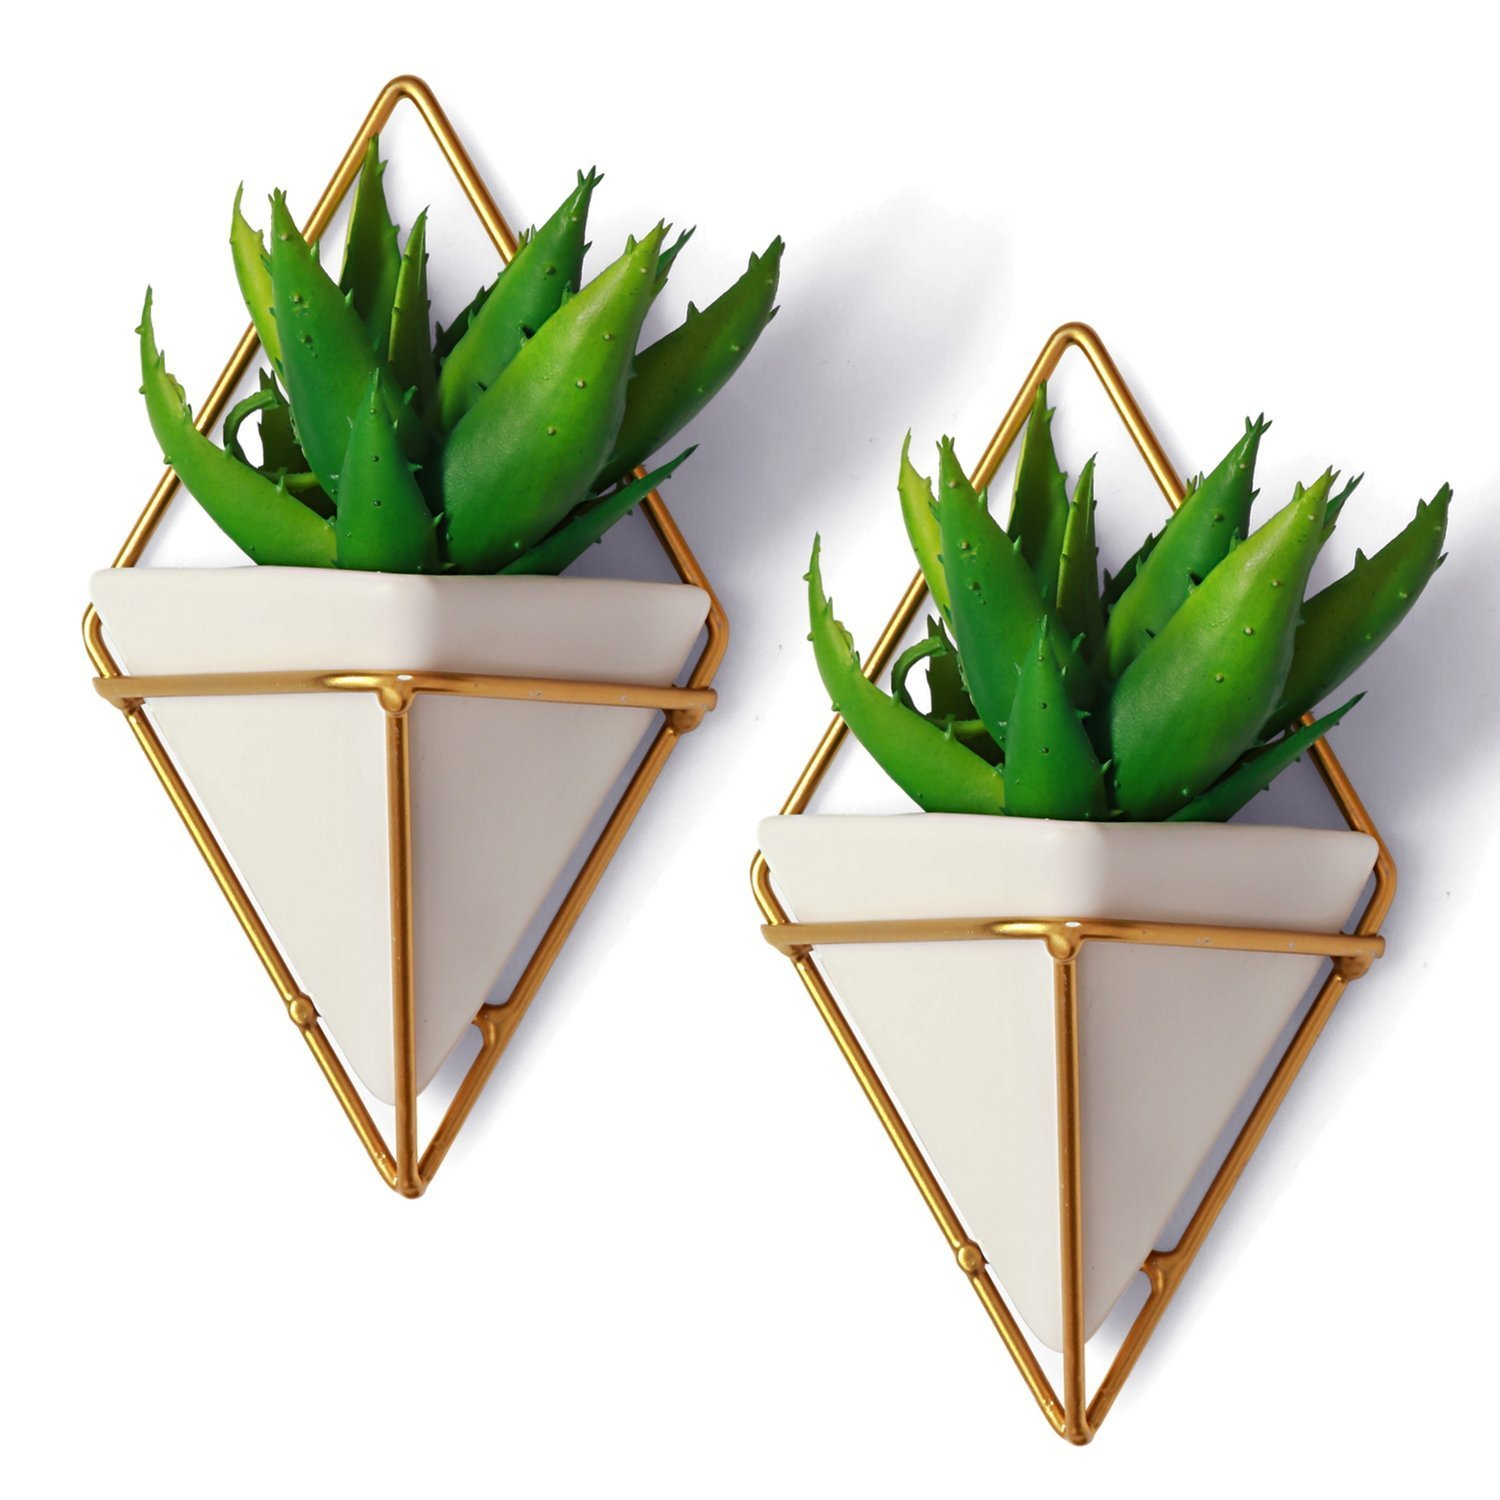 2 Small Decorative Geometric Hanging Planters Pot for Indoor Wall Decor, Planter For Succulent Plants, Air Plant, Cacti, Faux / Artificial Plants, White Ceramic / Brass, by California Home Goods